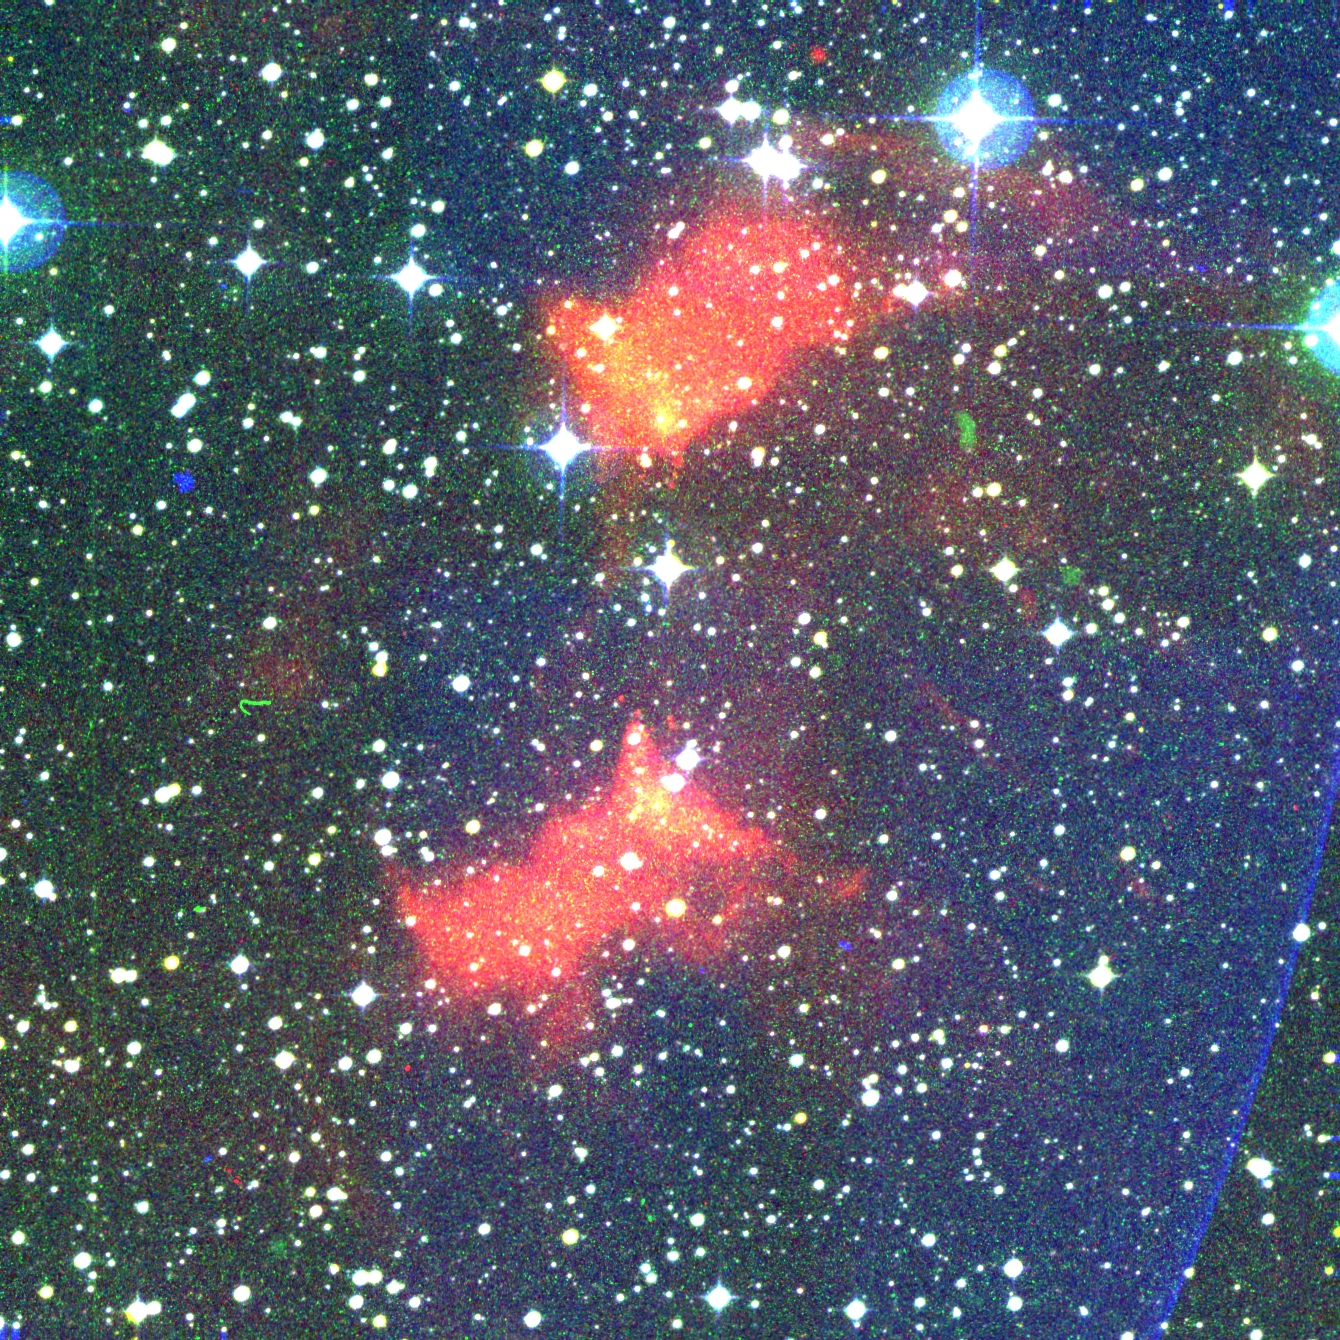 Color image of PN G258.5-01.3